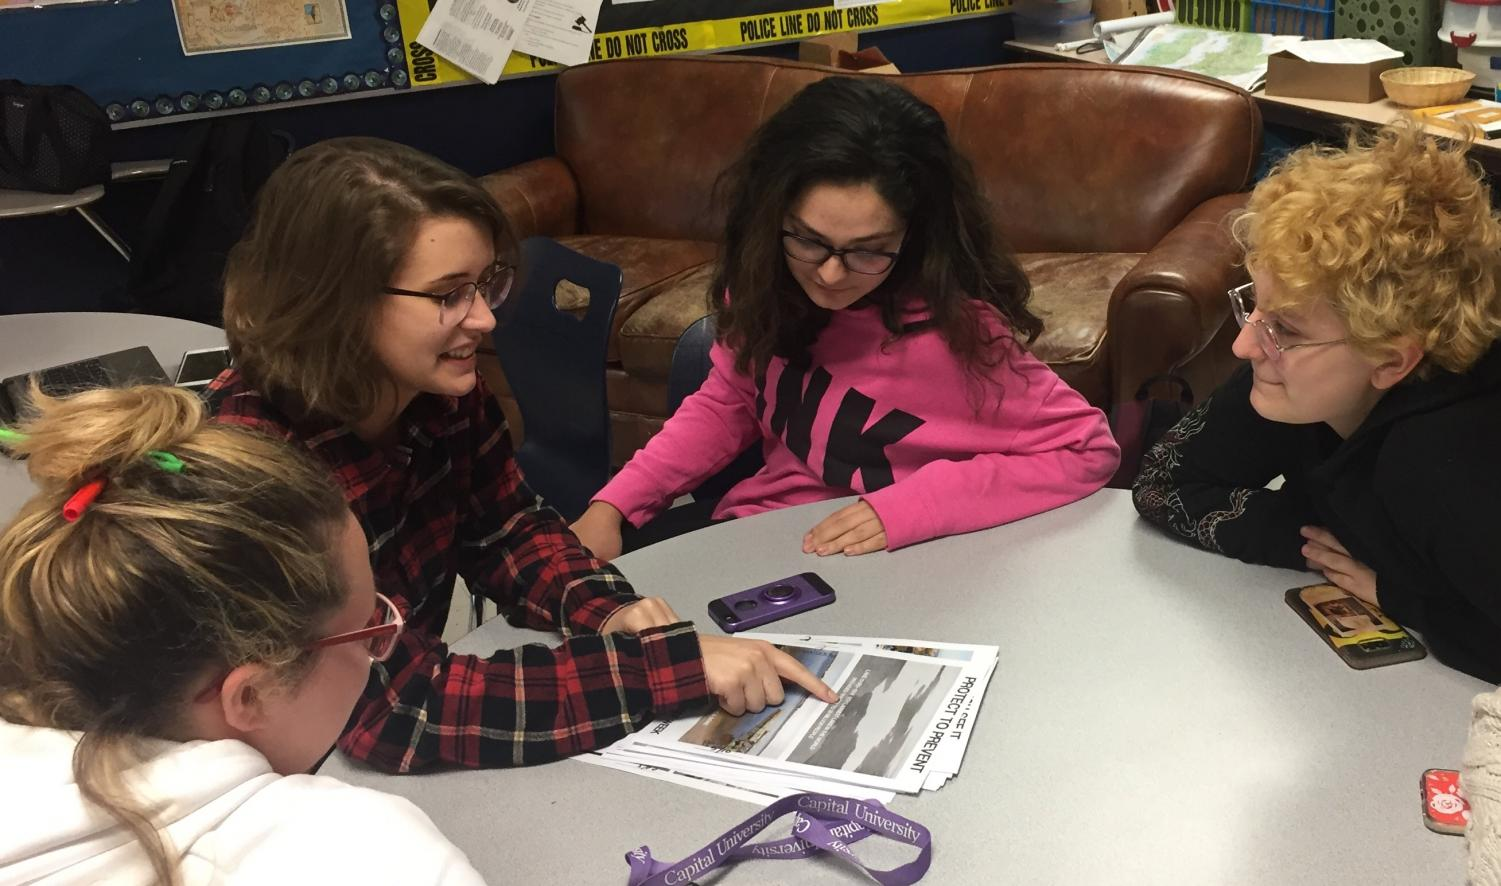 WeGo Global member Camryn Liberio explains the true or false statements to group members during their executive meeting Monday after school.